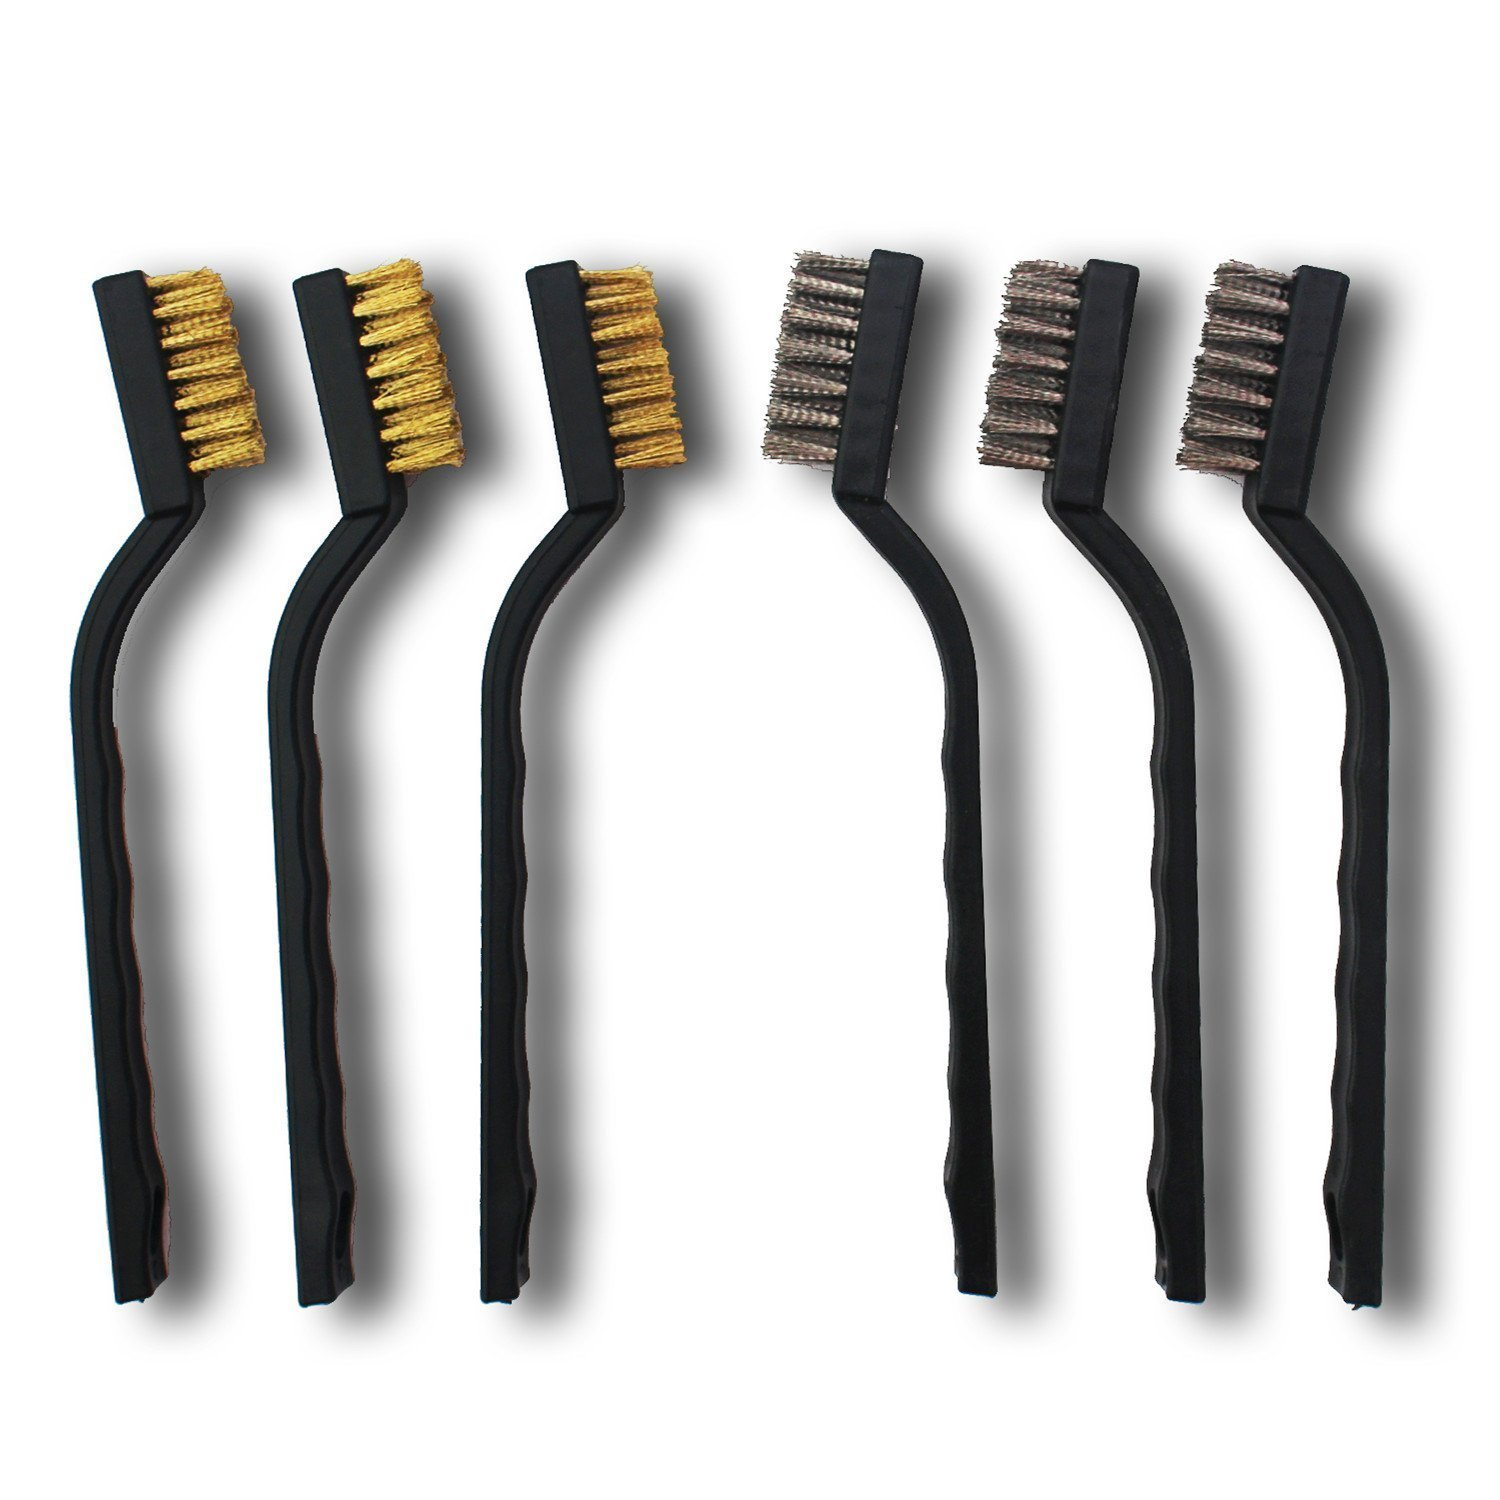 Stainless Steel and Brass 6 Pieces Mini Wire Brush Set for Cleaning Welding Slag and Rust